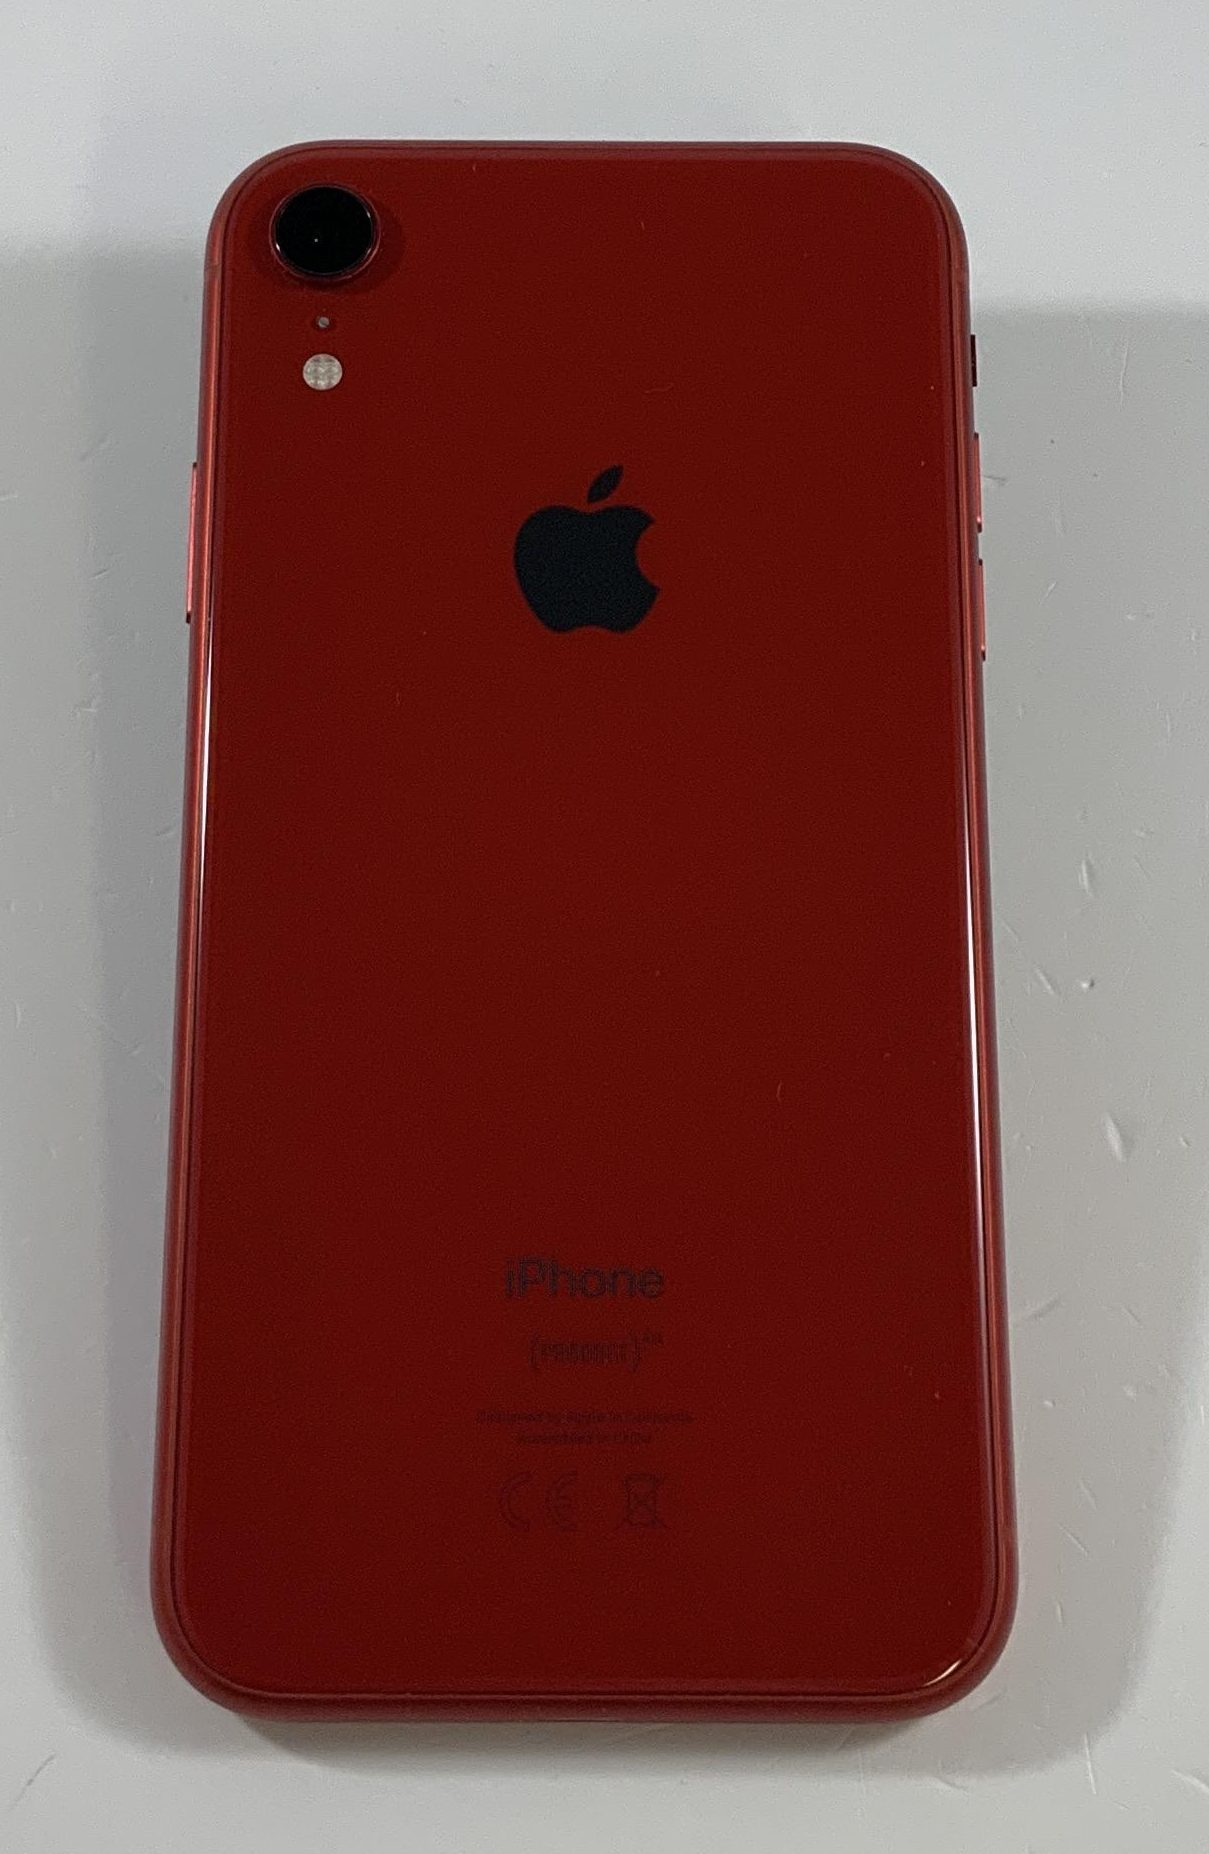 iPhone XR 64GB, 64GB, Red, Afbeelding 2